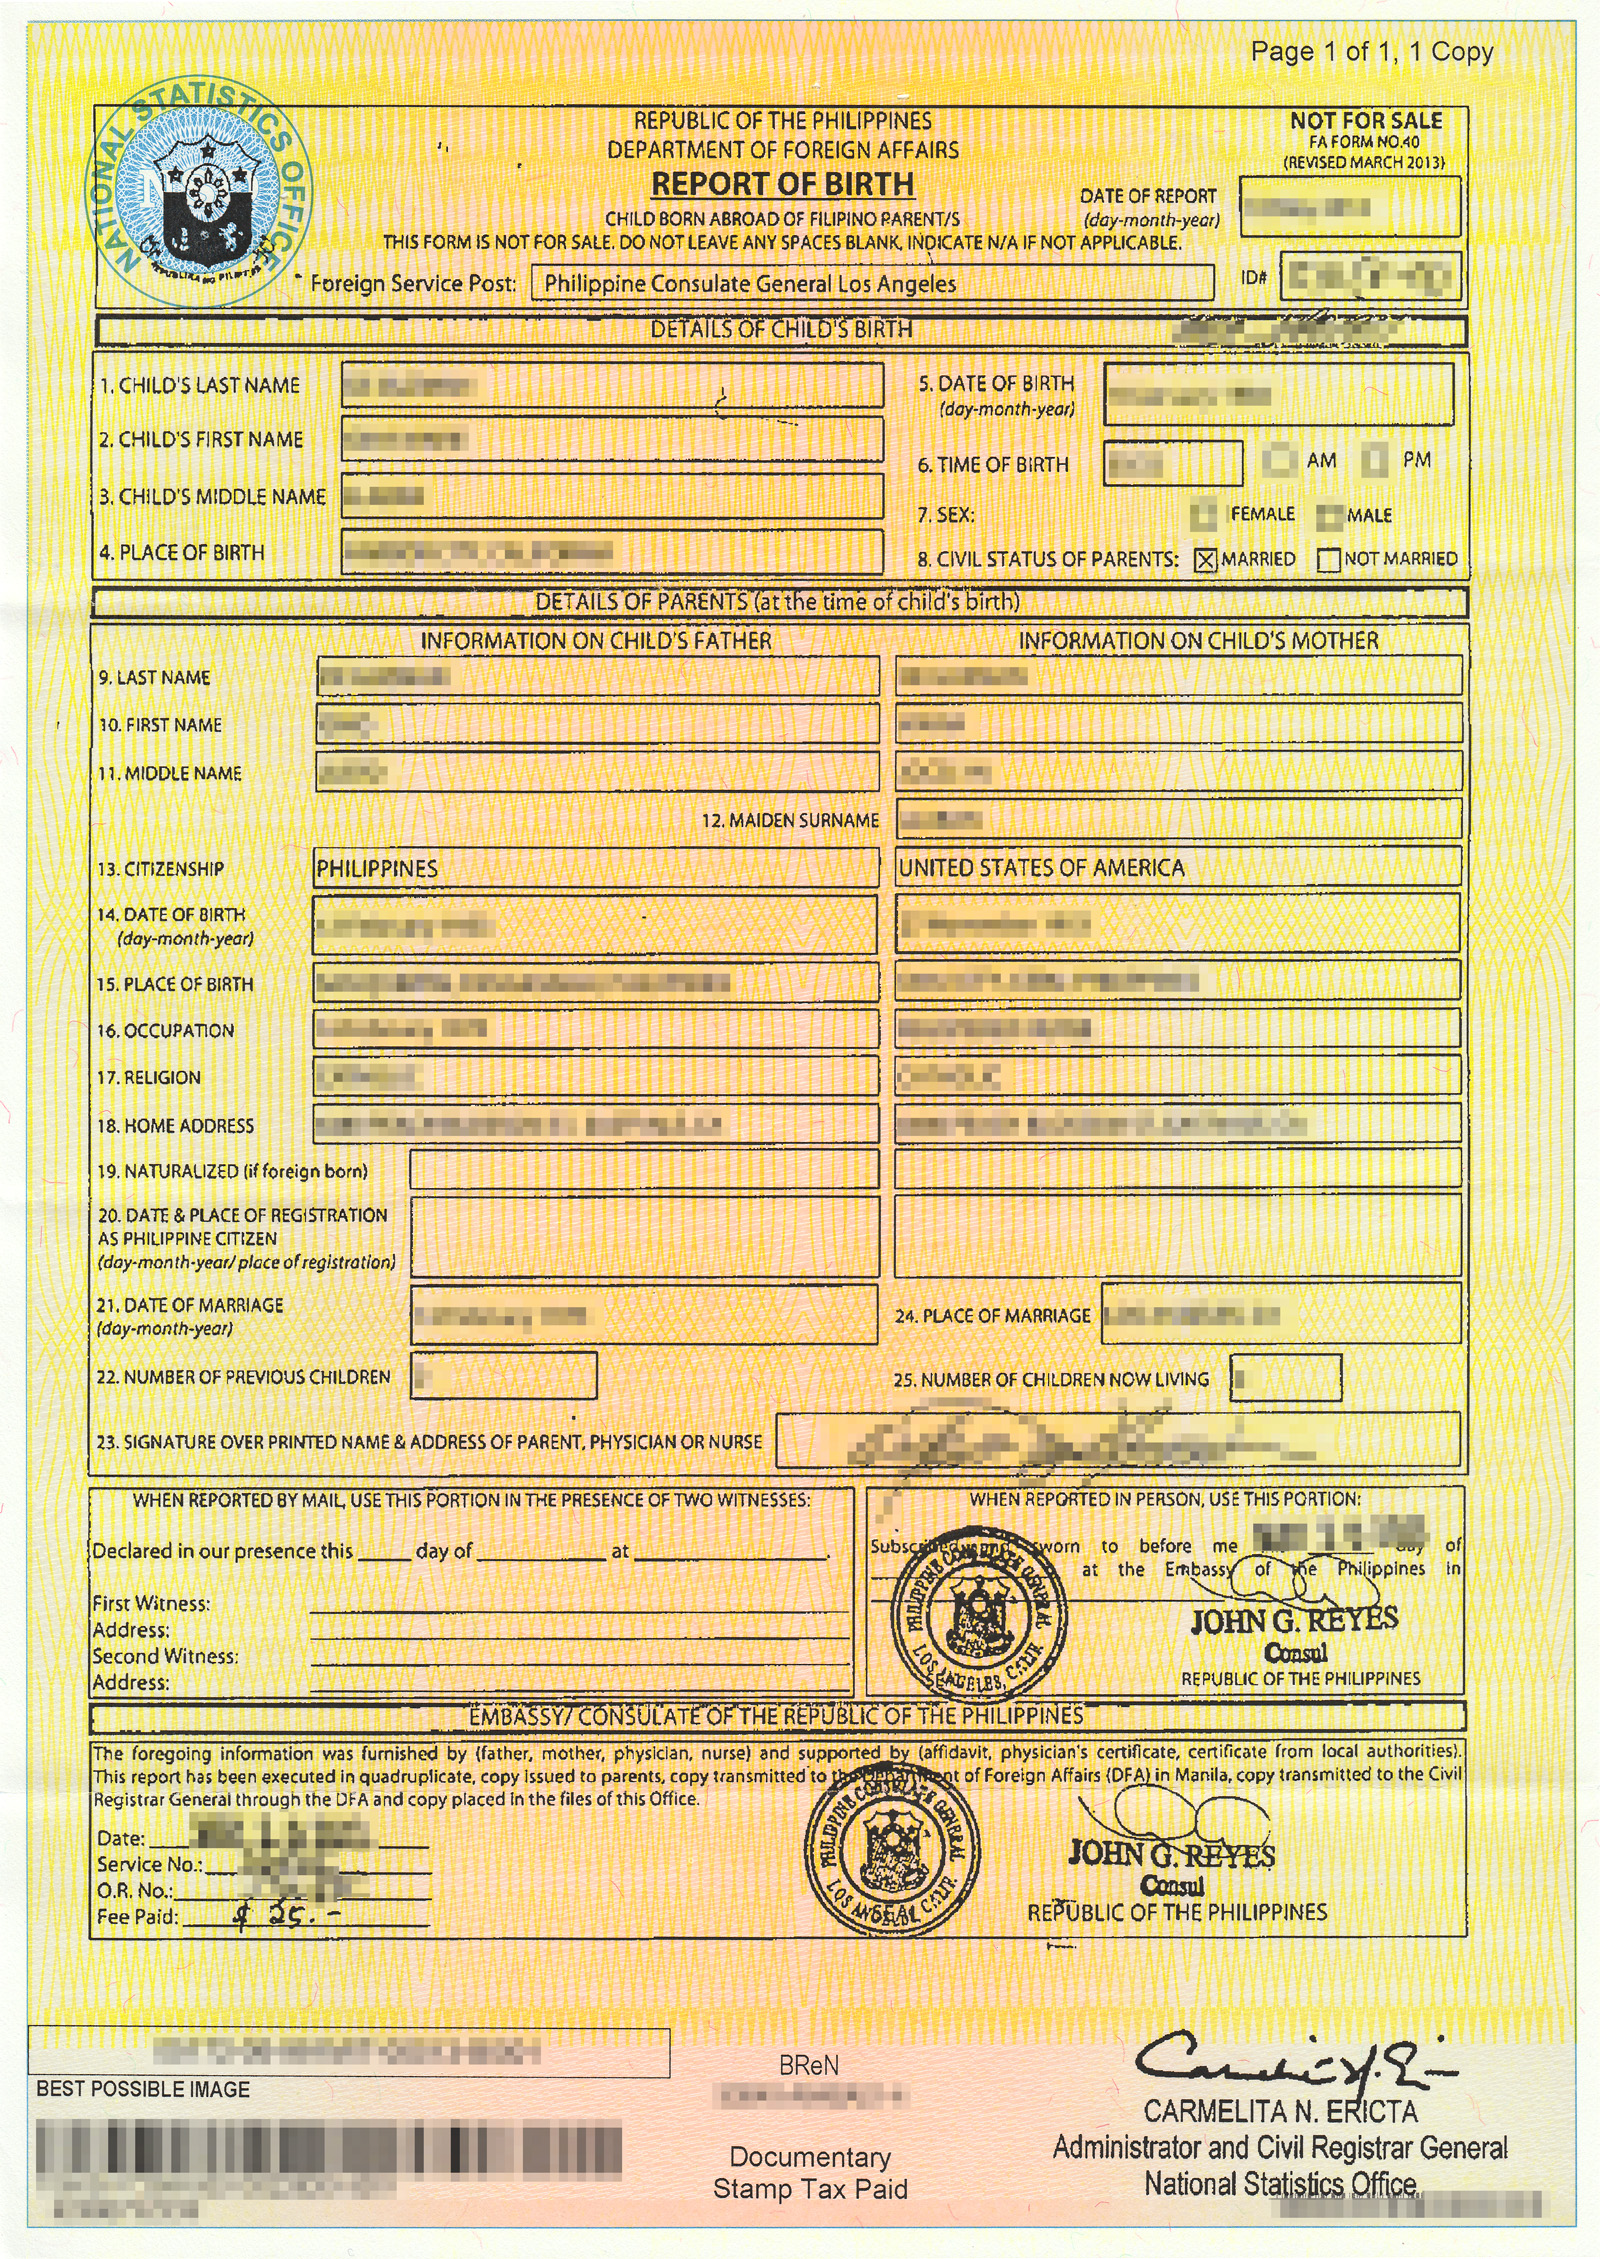 Birth certificate template philippines gallery certificate secpa birth certificate sample choice image certificate design birth certificate fee nso best design sertificate 2017 yadclub Gallery